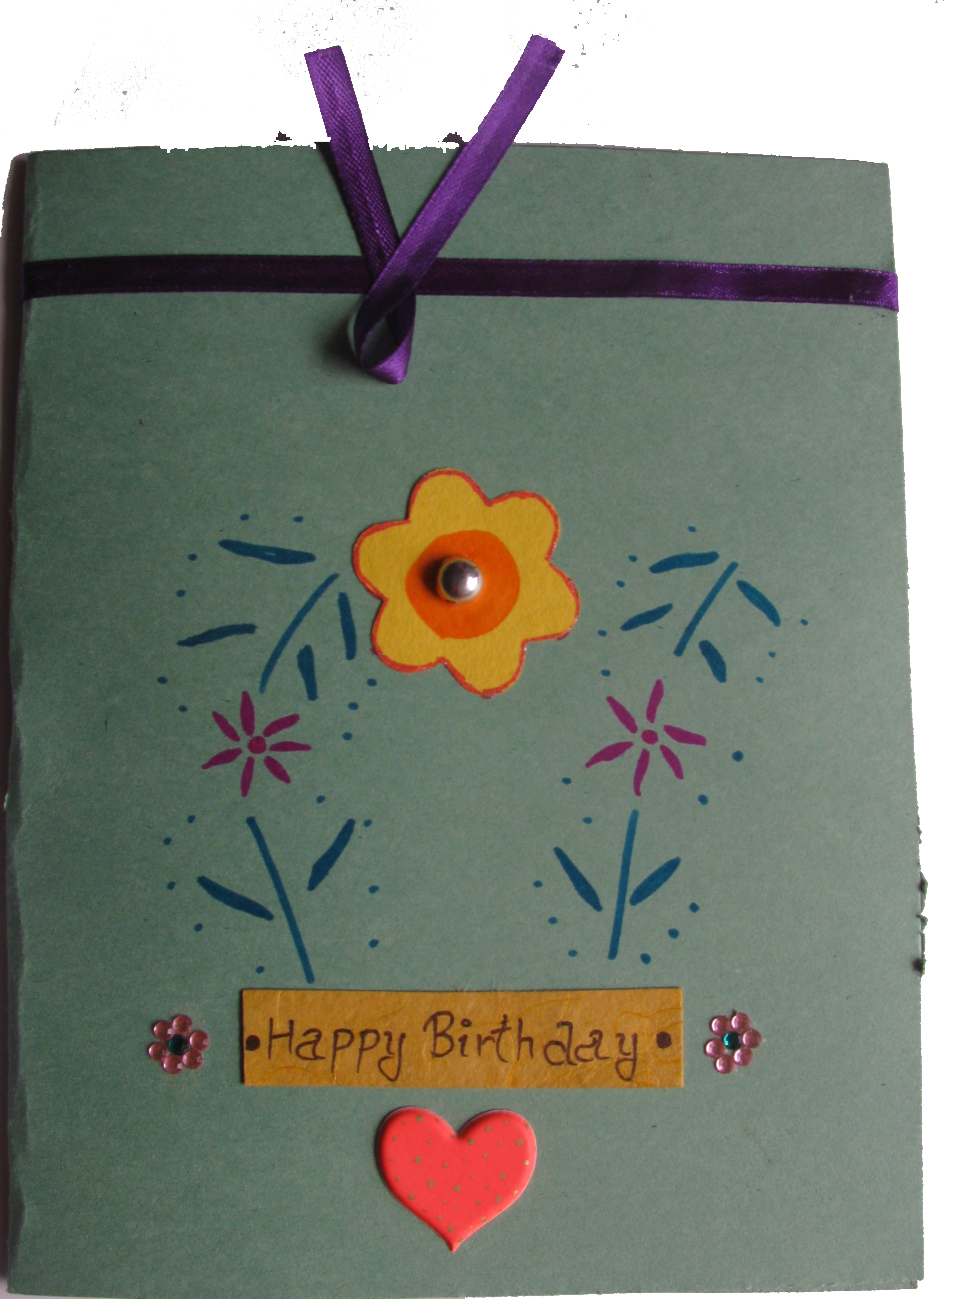 Beautiful Birthday Card(blue wrap) in For Wife